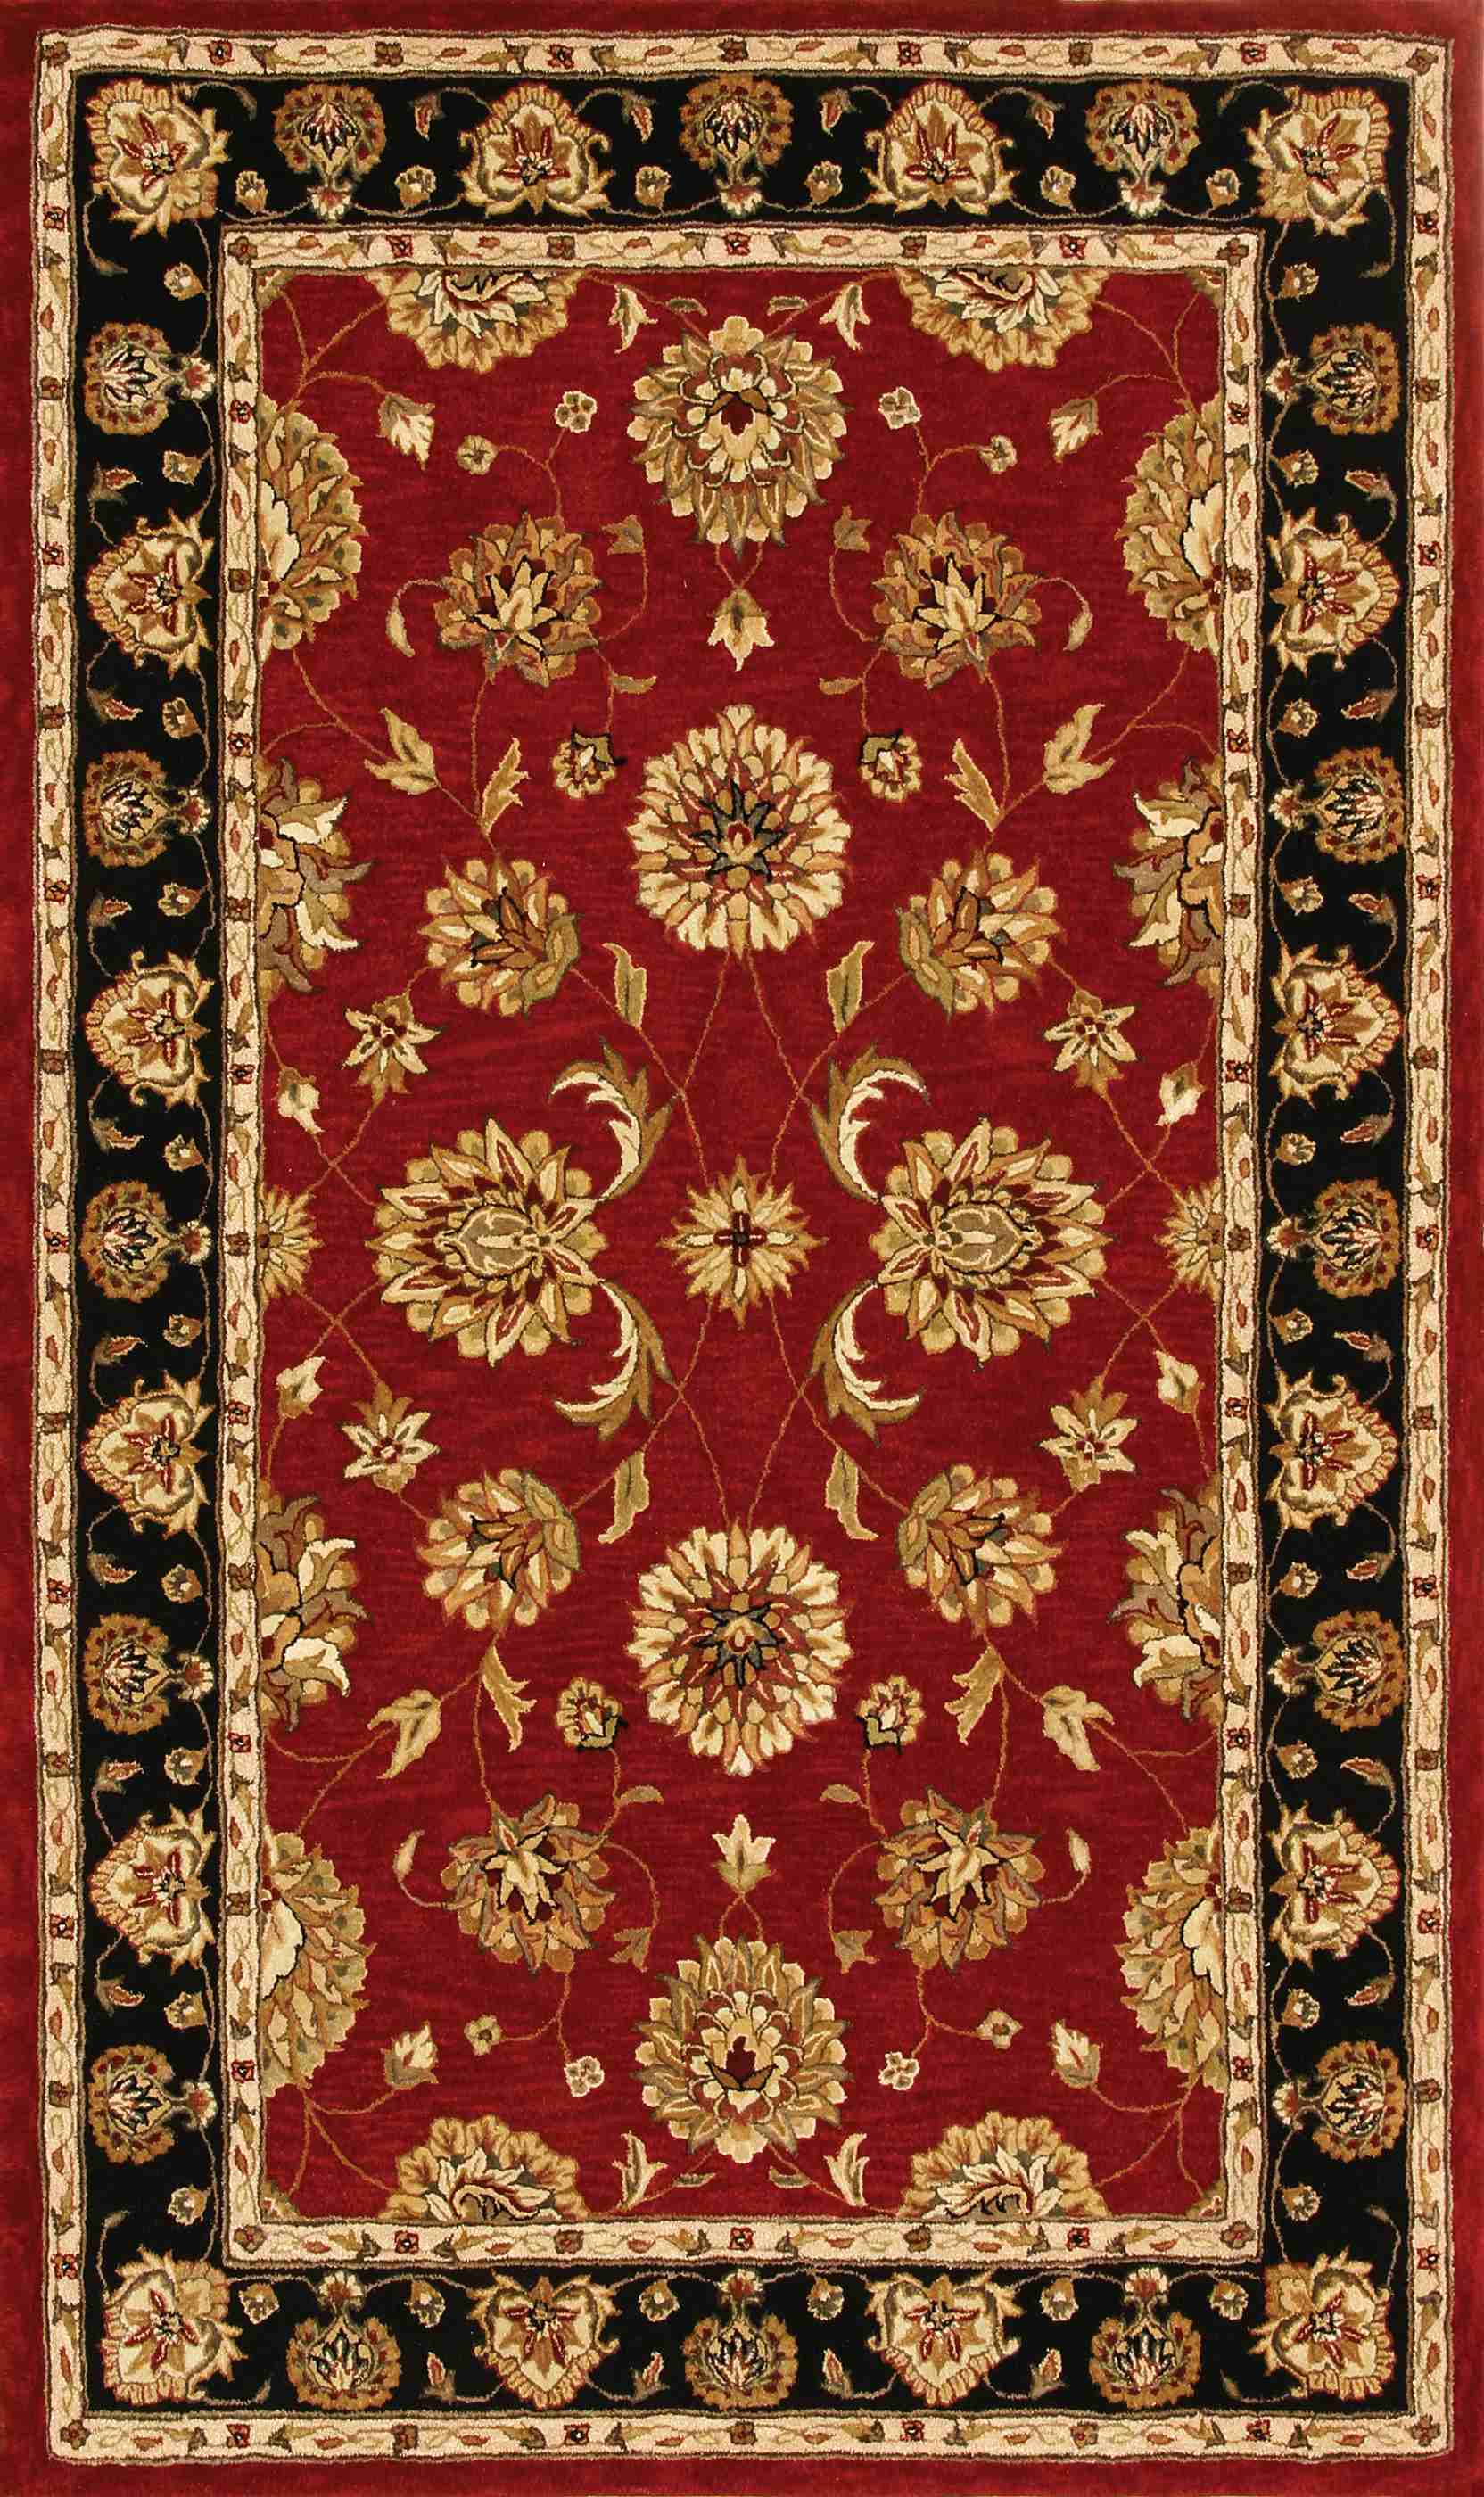 Dynamic Rugs Jewel Classic Red/black 70230 Area Rug